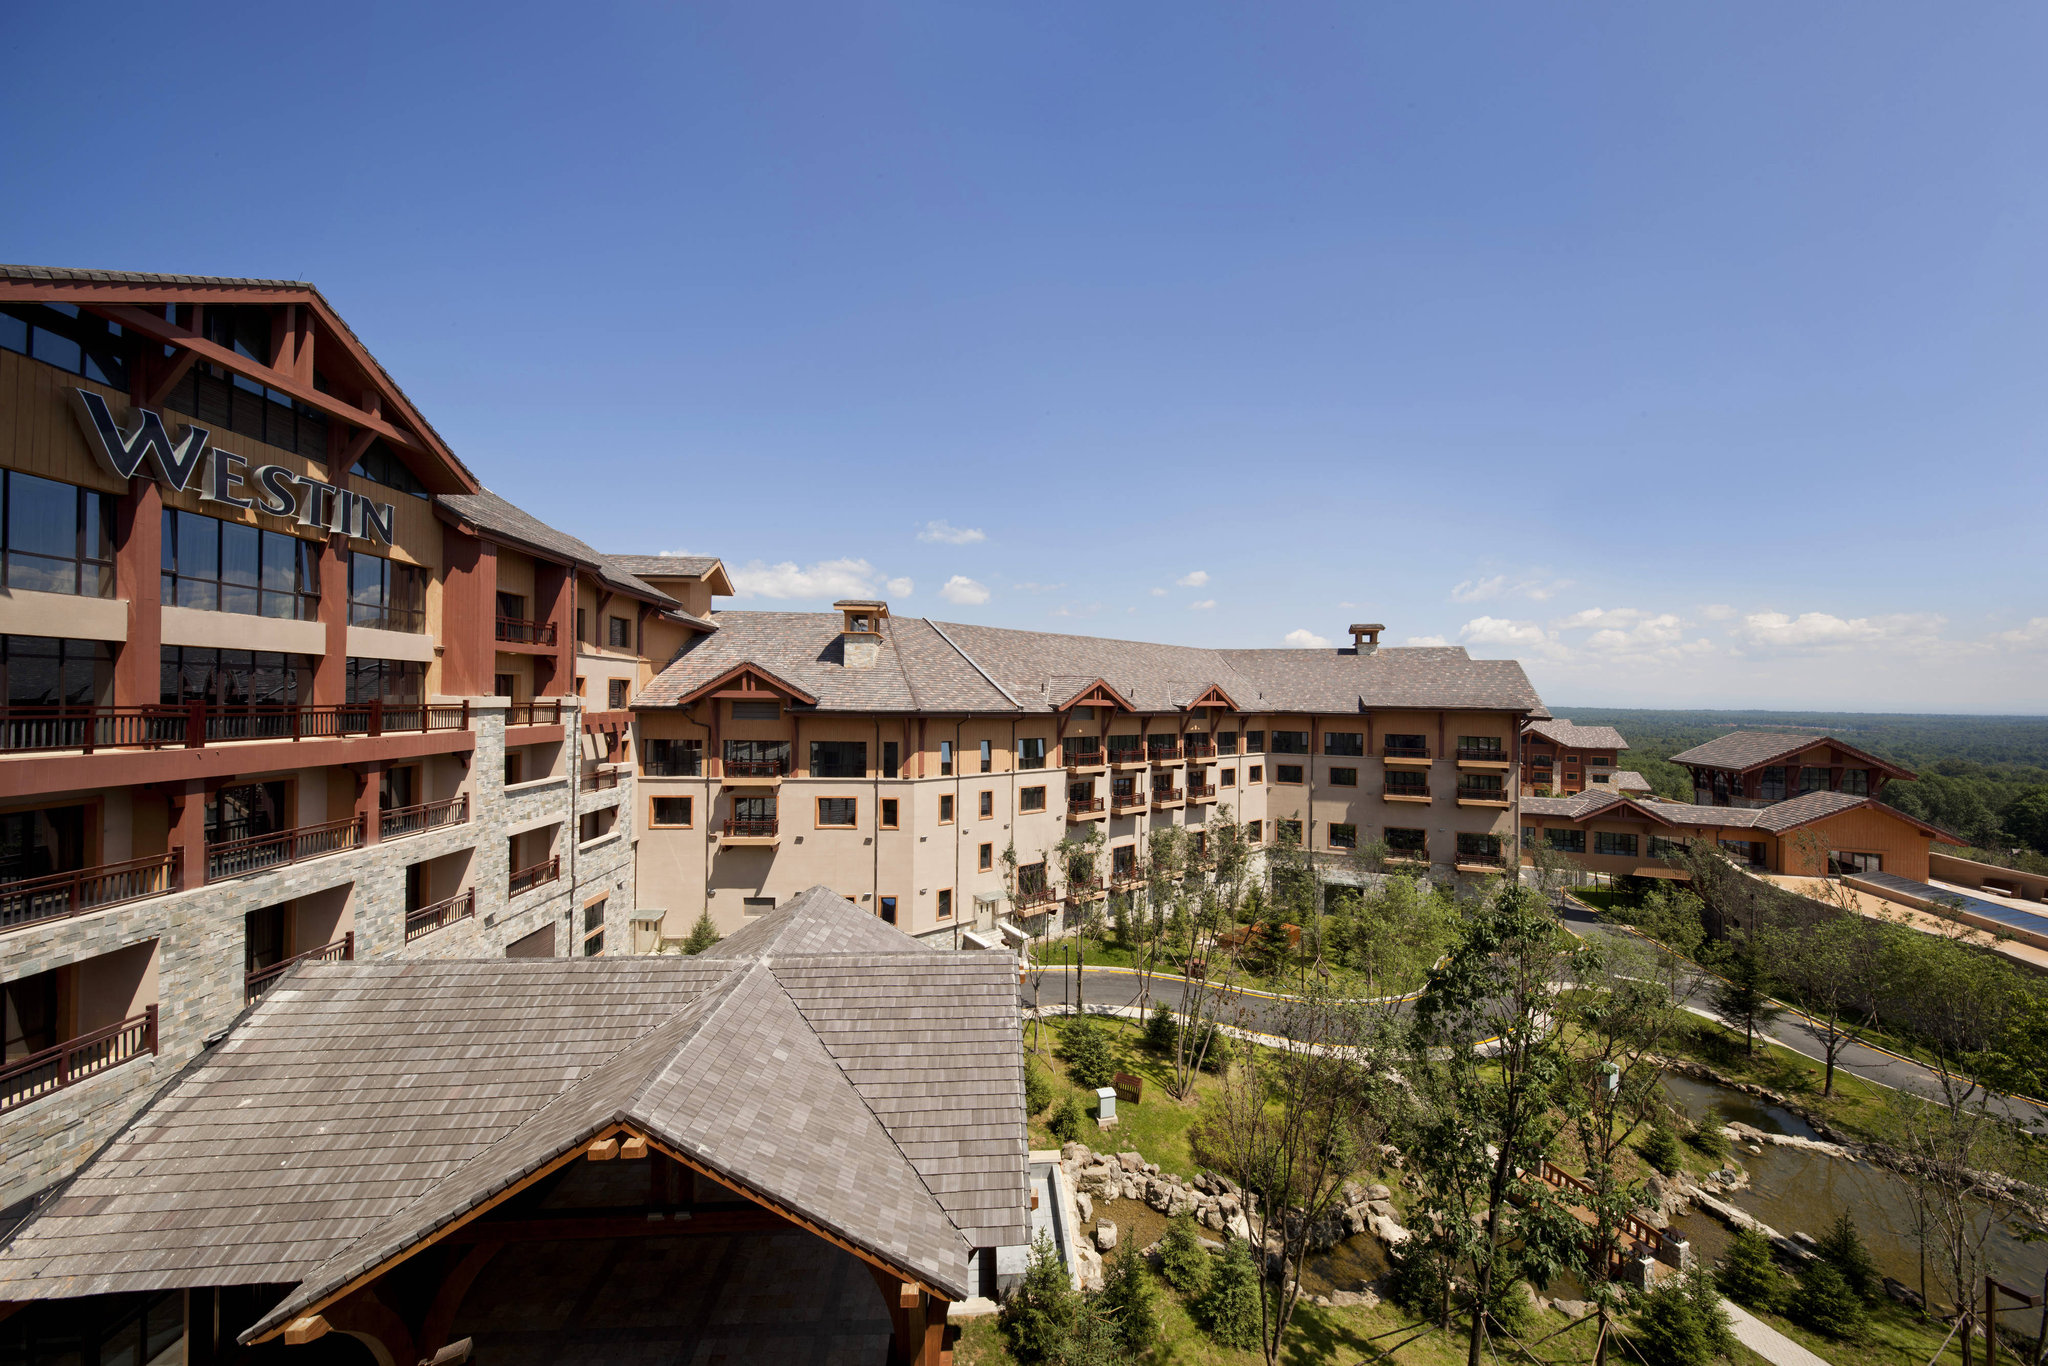 The Westin Changbaishan Resort